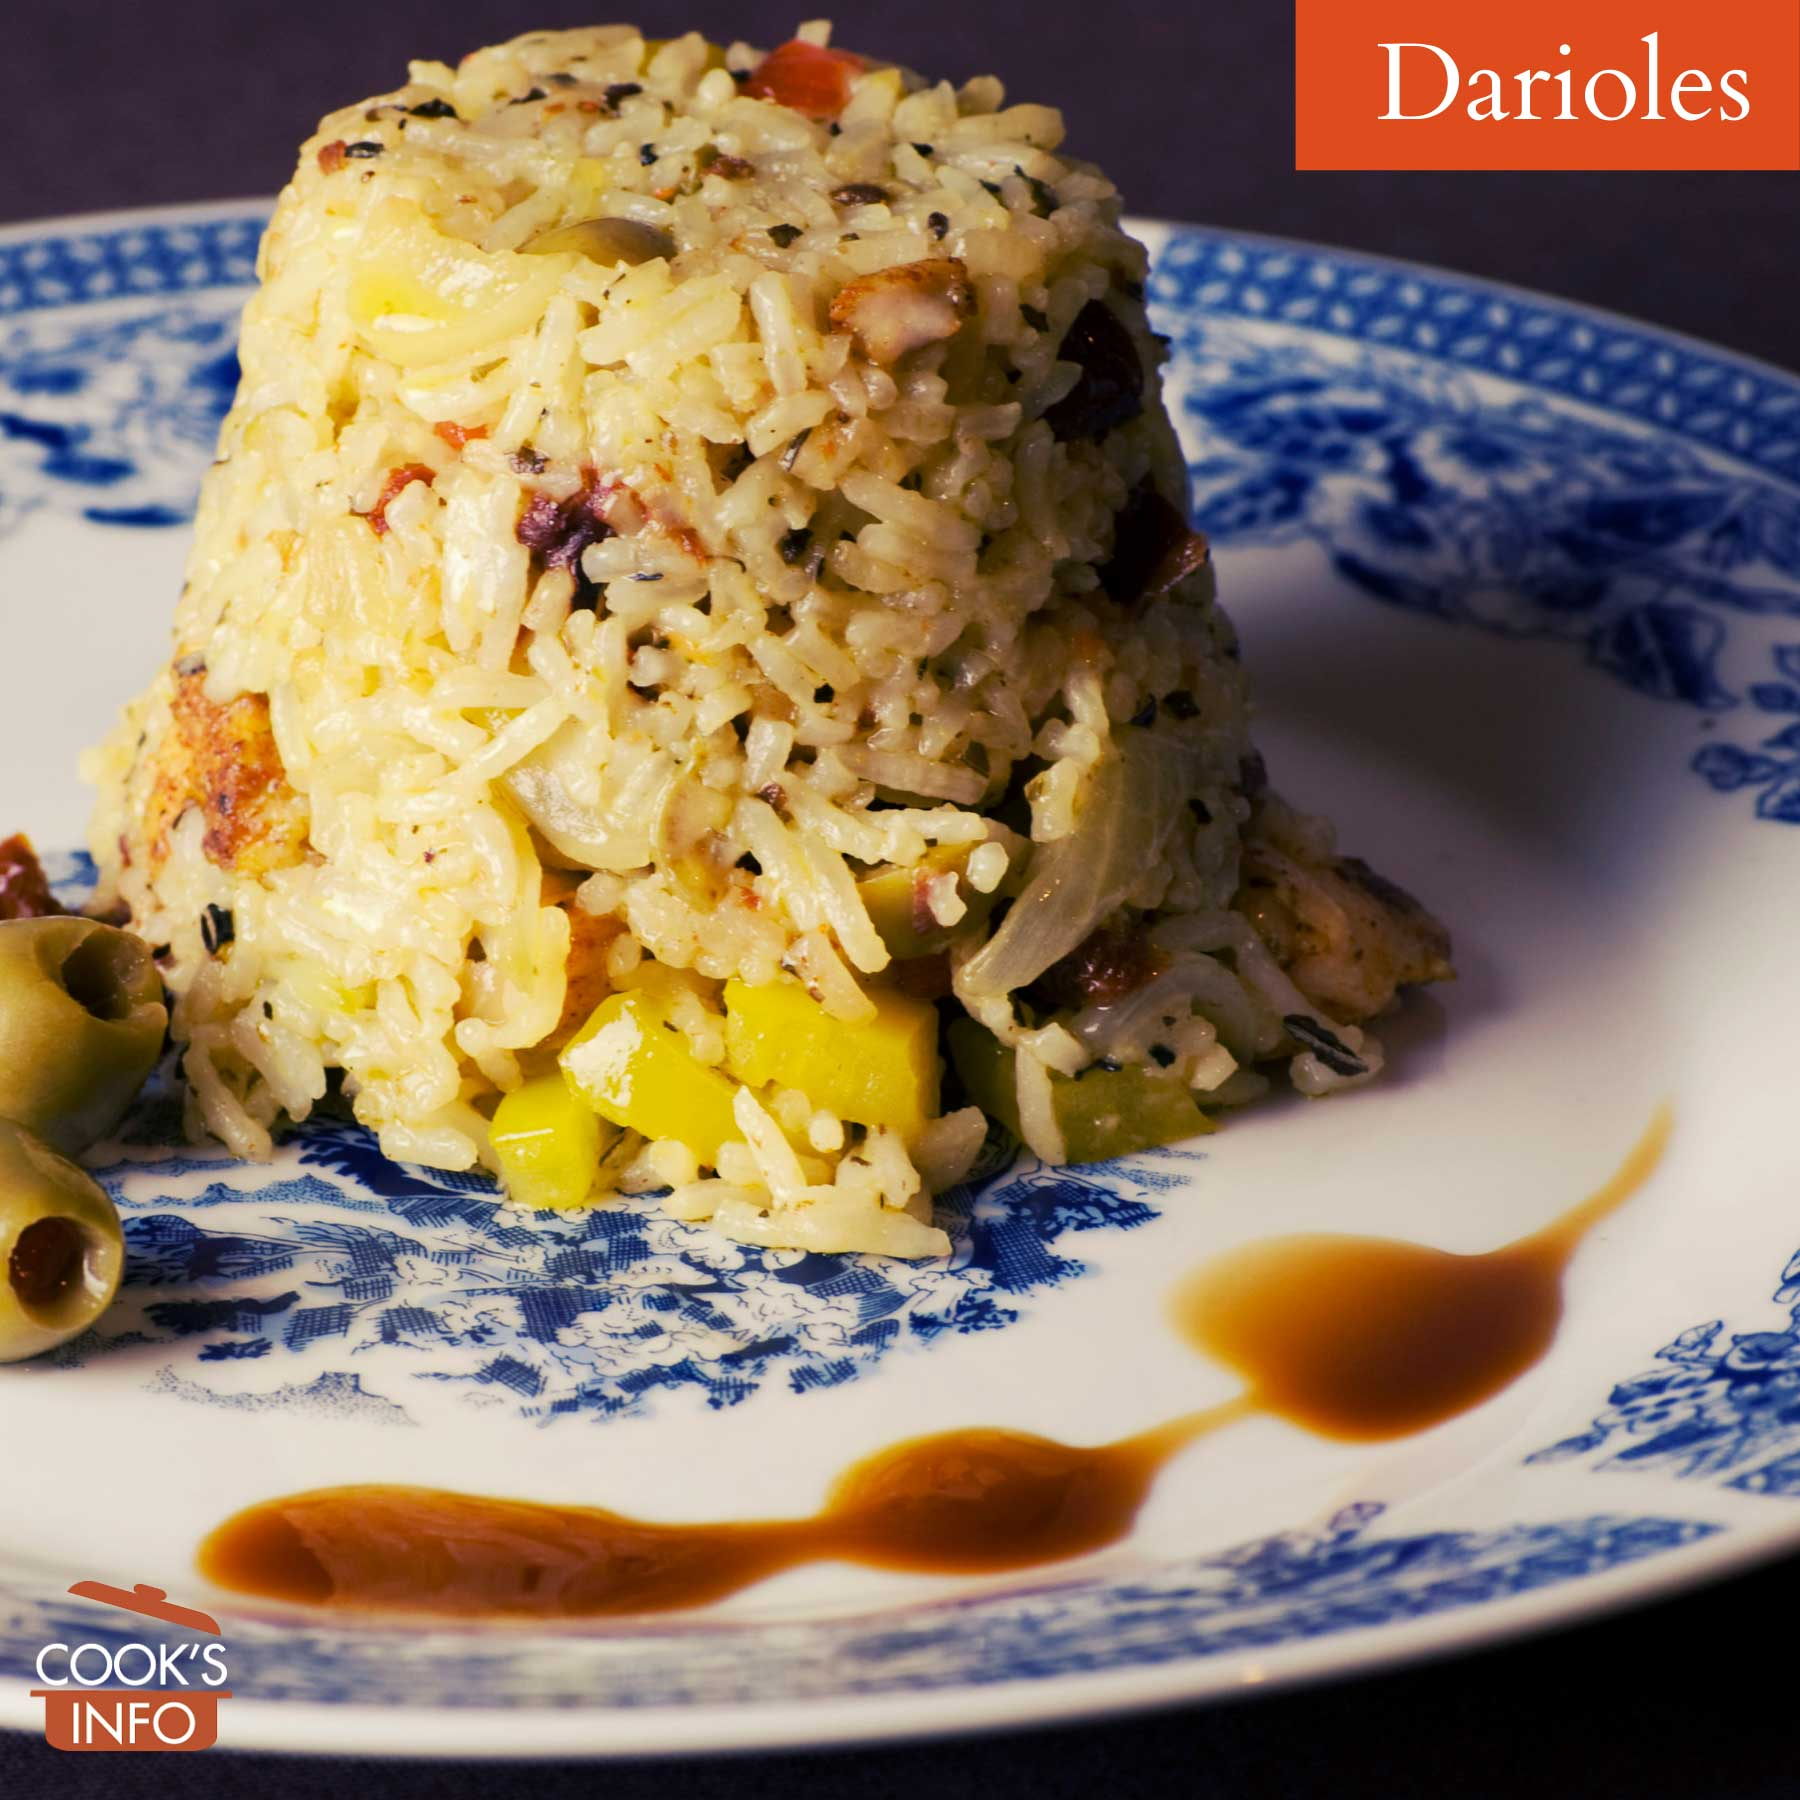 Rice moulded in dariole shape